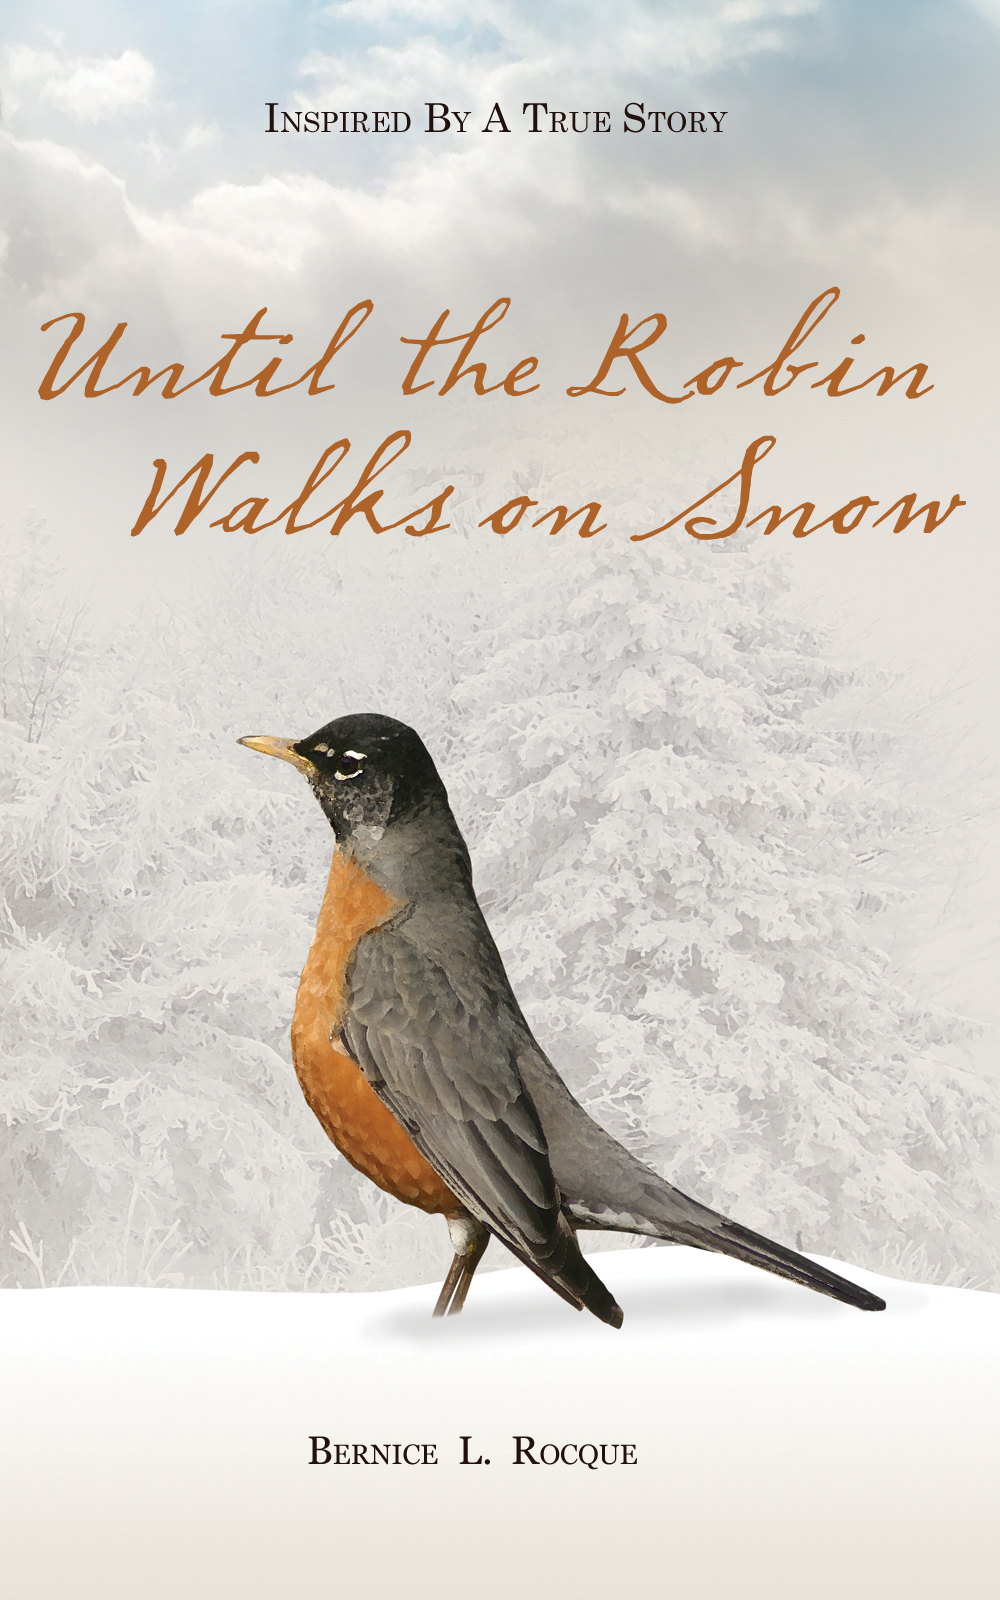 9780985682200 Until the Robin Walks on Snow COVER 1000x1600